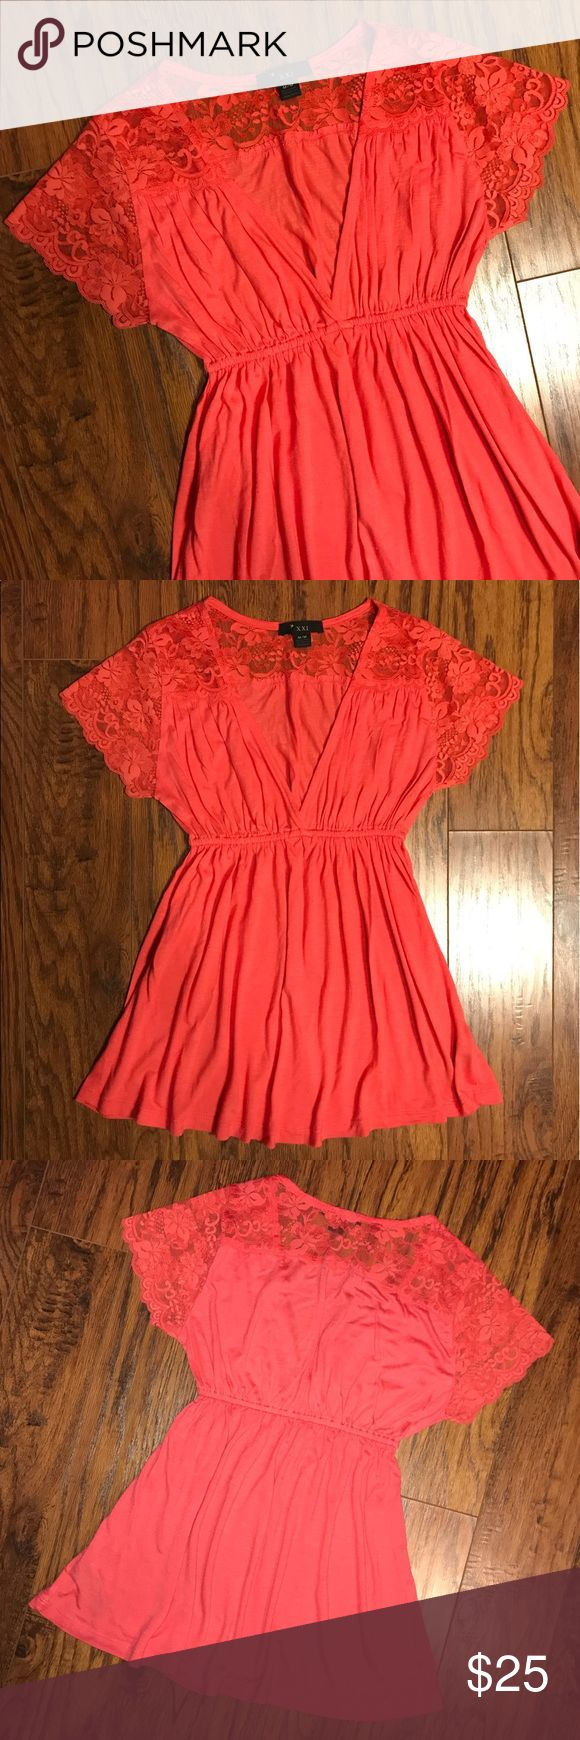 Lace Top Slinky Silky Soft Draped Coral Blouse F21 Forever 21 — Blood Orange Color (Red-ish coral) — Silky Lace On Top Shoulders, upper back, & entire Short Sleeves — Slinky Material, with perfect Draping — Elastic Cinched at Waistline — Perfect condition, like new, never worn —  Fabric: 100% Rayon Contrast: 92% Nylon, 8% Spandex Forever 21 Tops Blouses